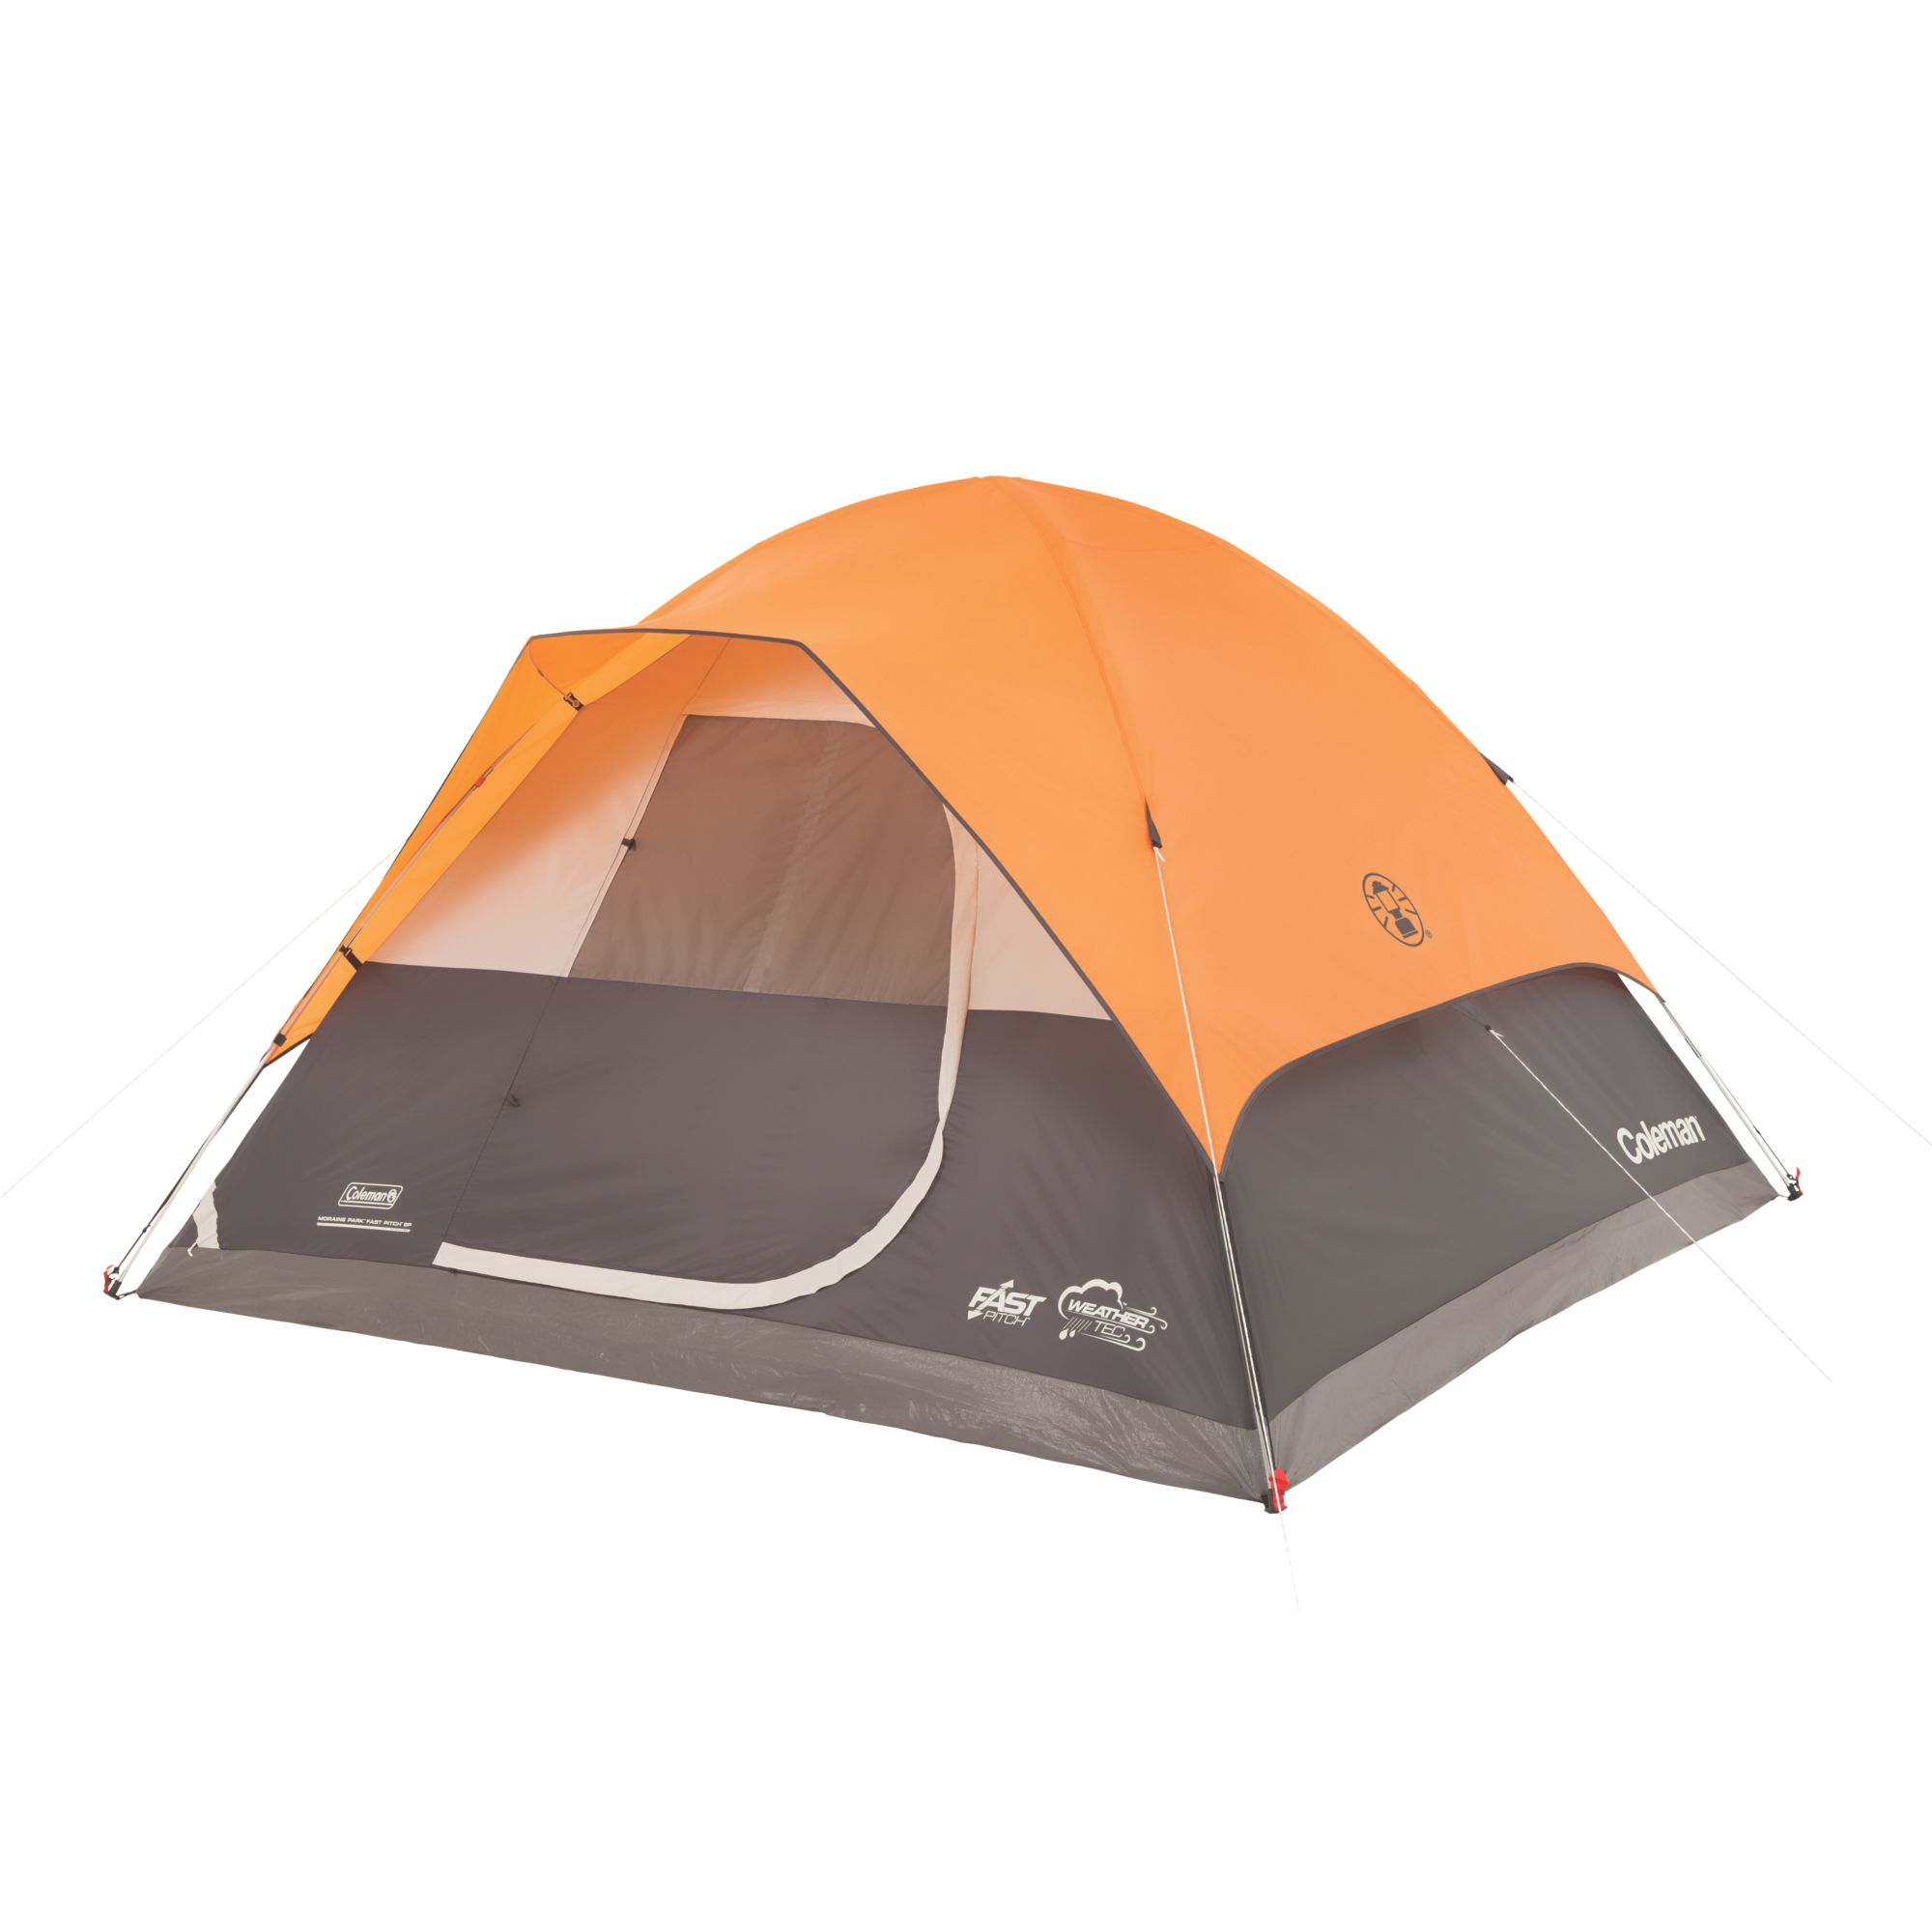 Moraine park fast pitch 6 person dome tent